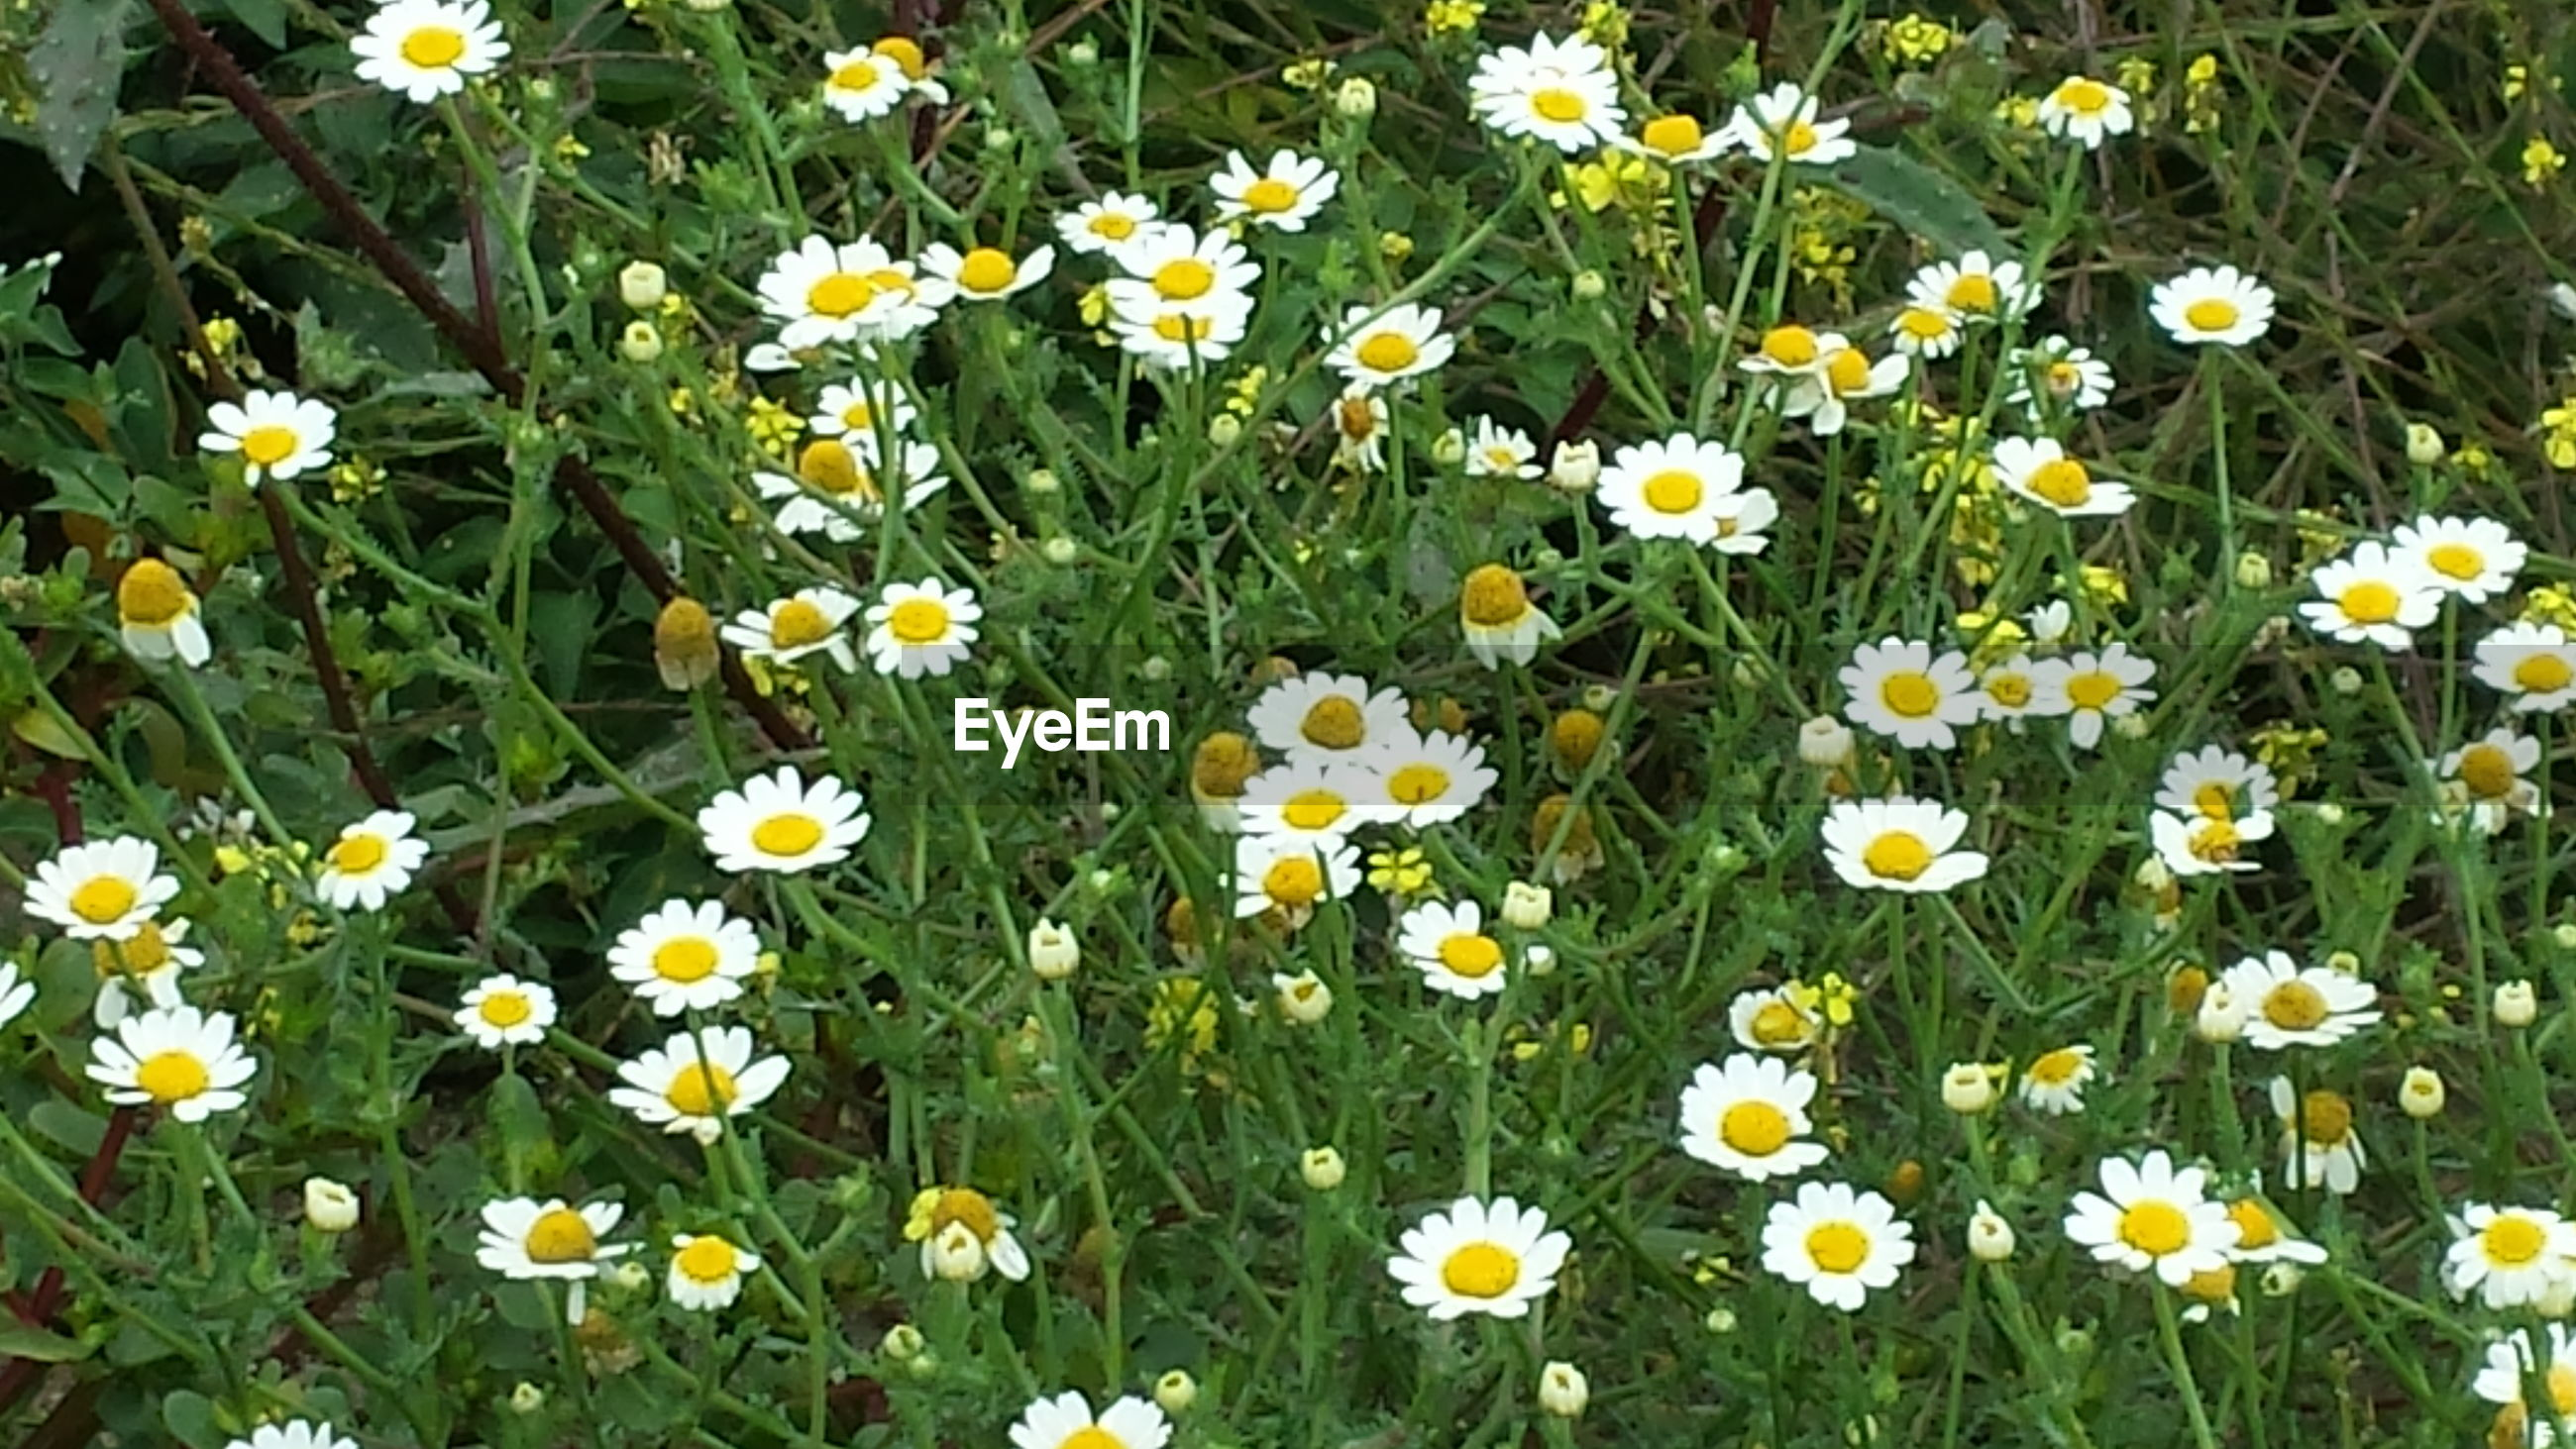 flower, freshness, growth, daisy, fragility, petal, beauty in nature, white color, nature, flower head, blooming, field, plant, high angle view, in bloom, yellow, abundance, blossom, botany, wildflower